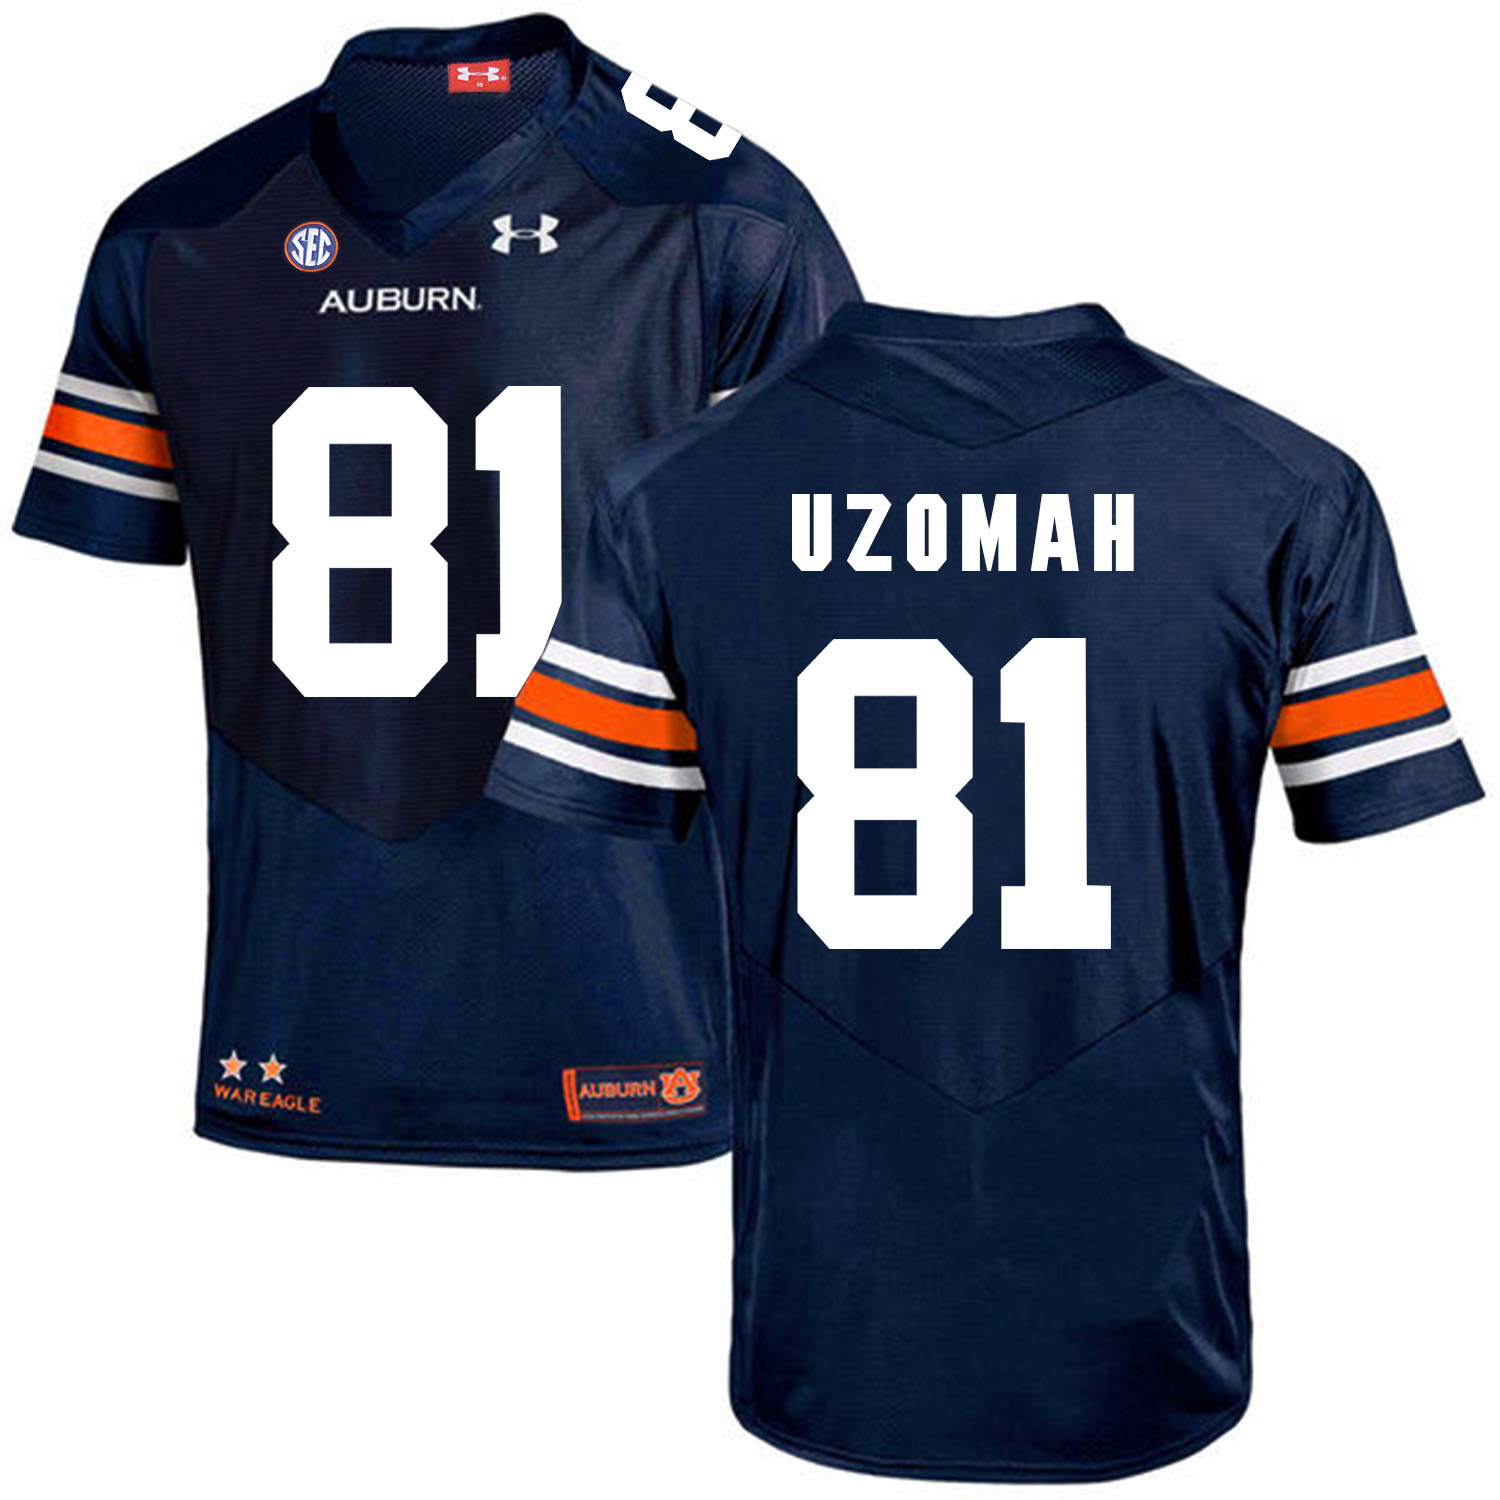 Auburn Tigers 81 C.J. Uzomah Navy College Football Jersey